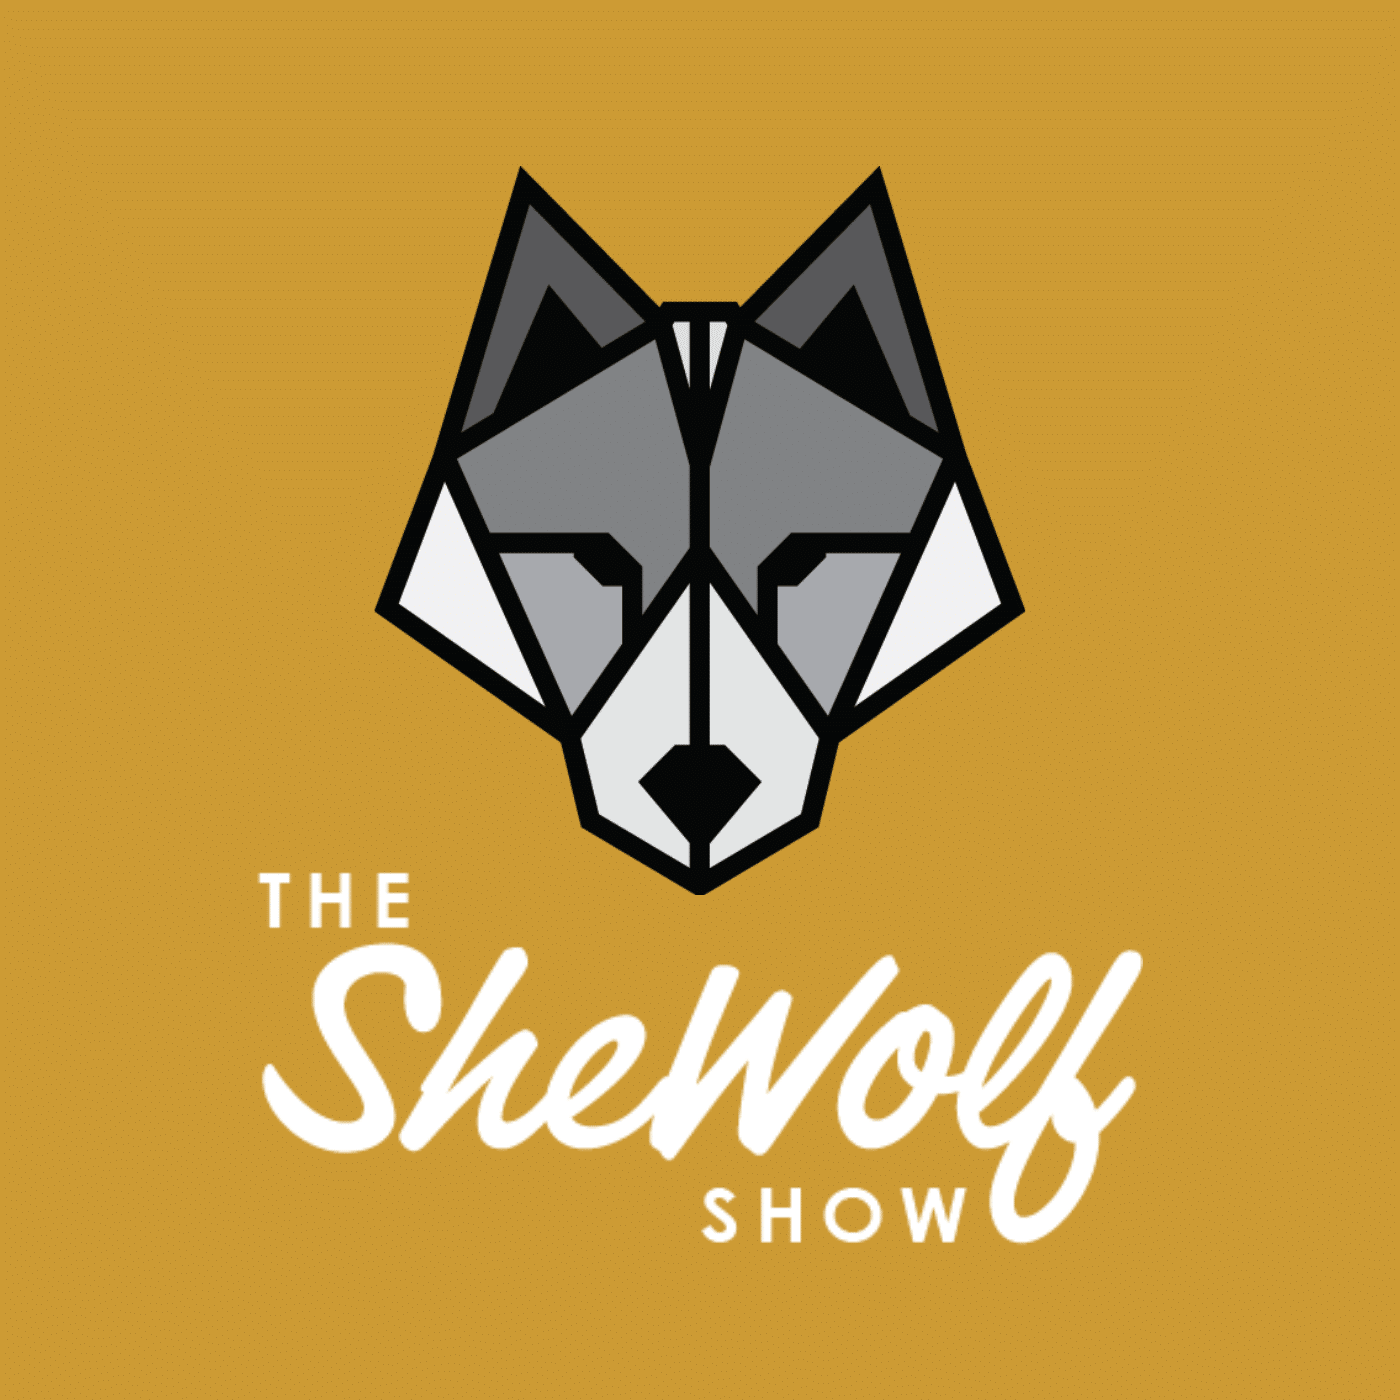 The SheWolf Show Podcast